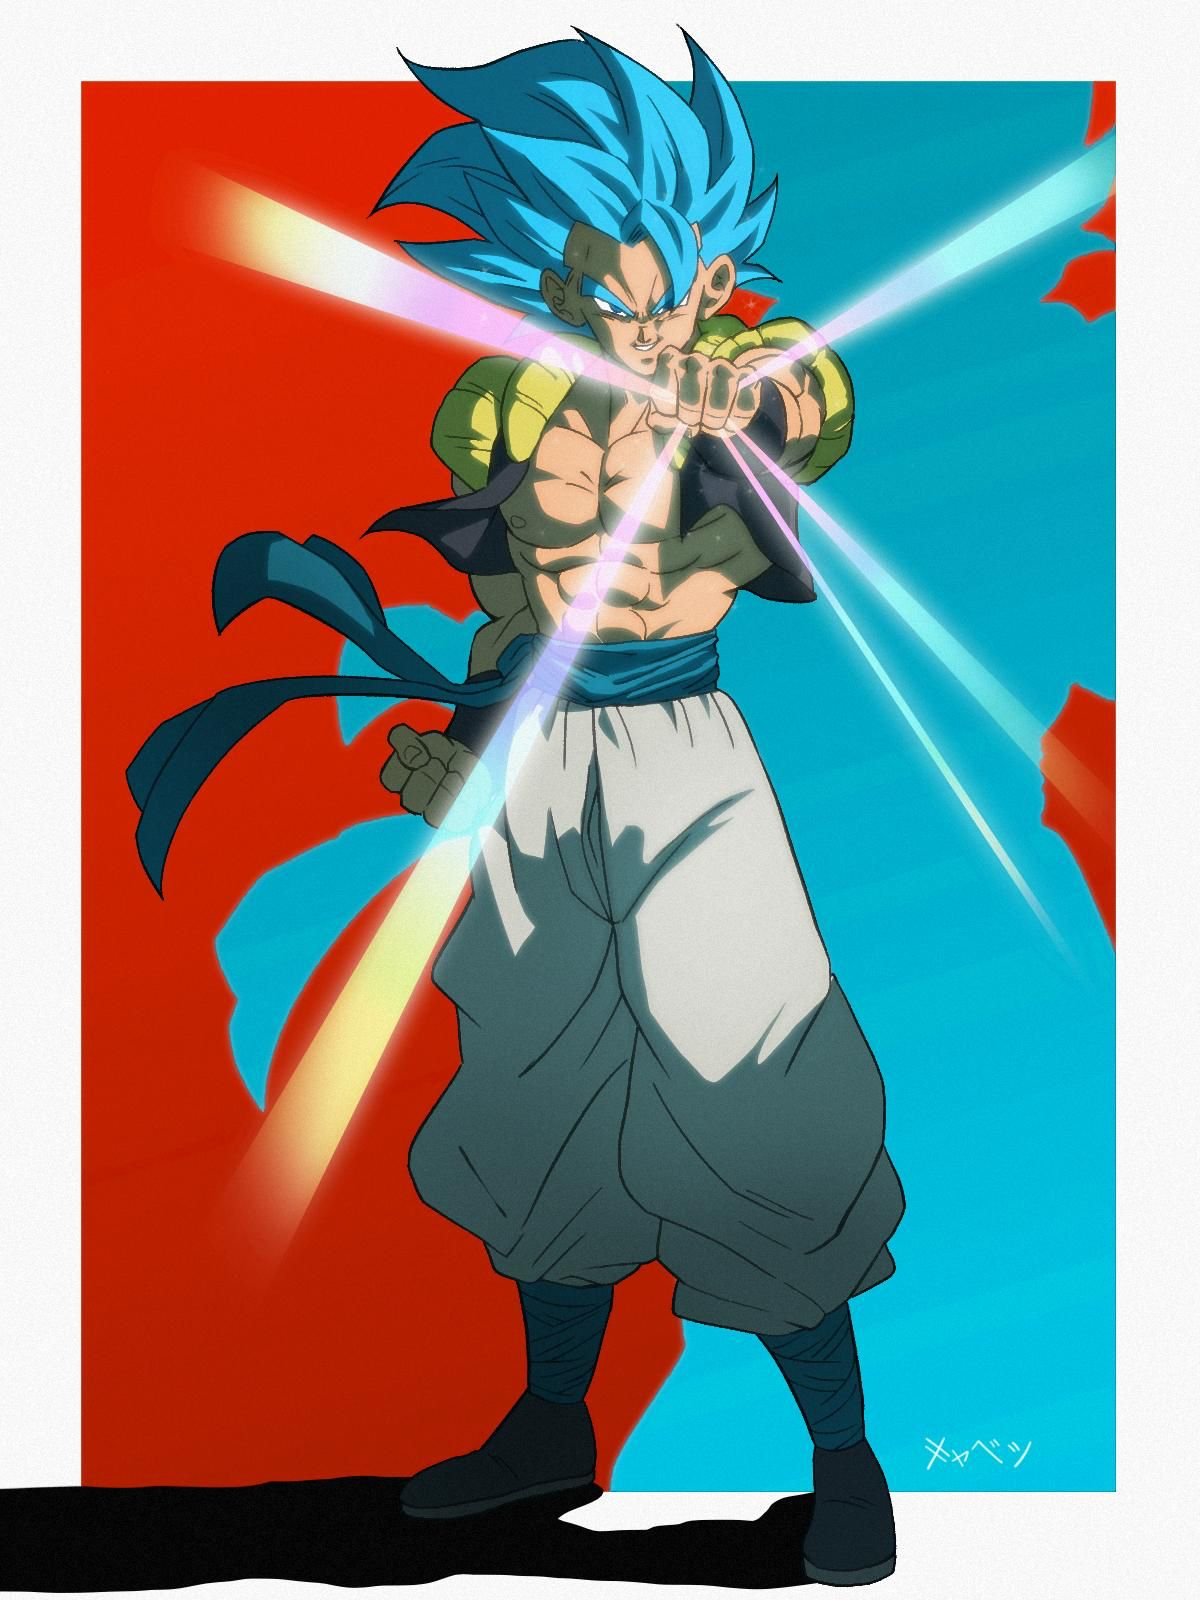 9a81e4a9b1 We are Gogeta Dragon Ball Z, Dbz, Black Goku, Epic Characters, Manga